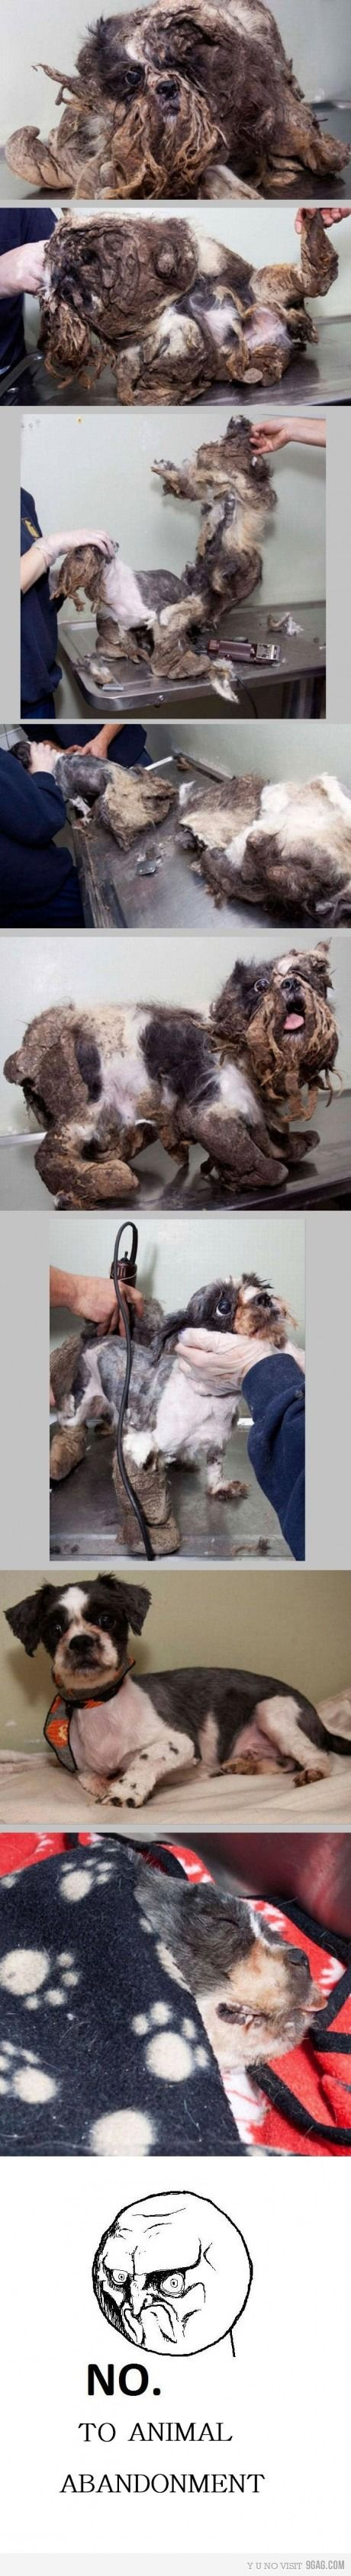 This is this dogs first haircut. You have to double click to get to see it up close. At first I wasn't sure what had happened to this poor little guy.